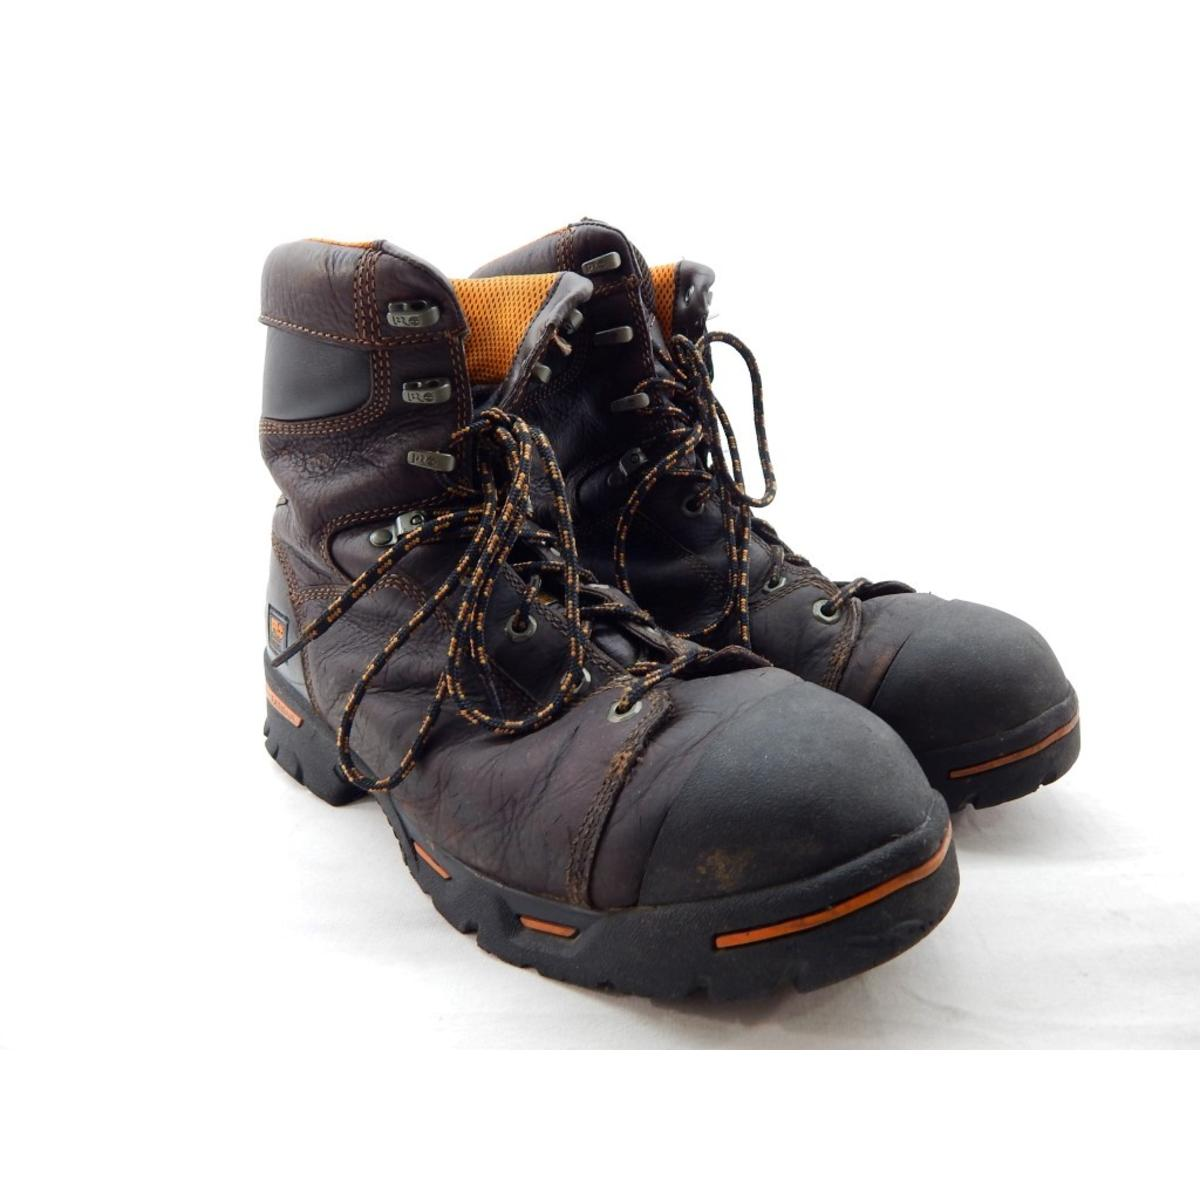 0e8ef4c01ad800 Details about Timberland Pro Men s Endurance 6